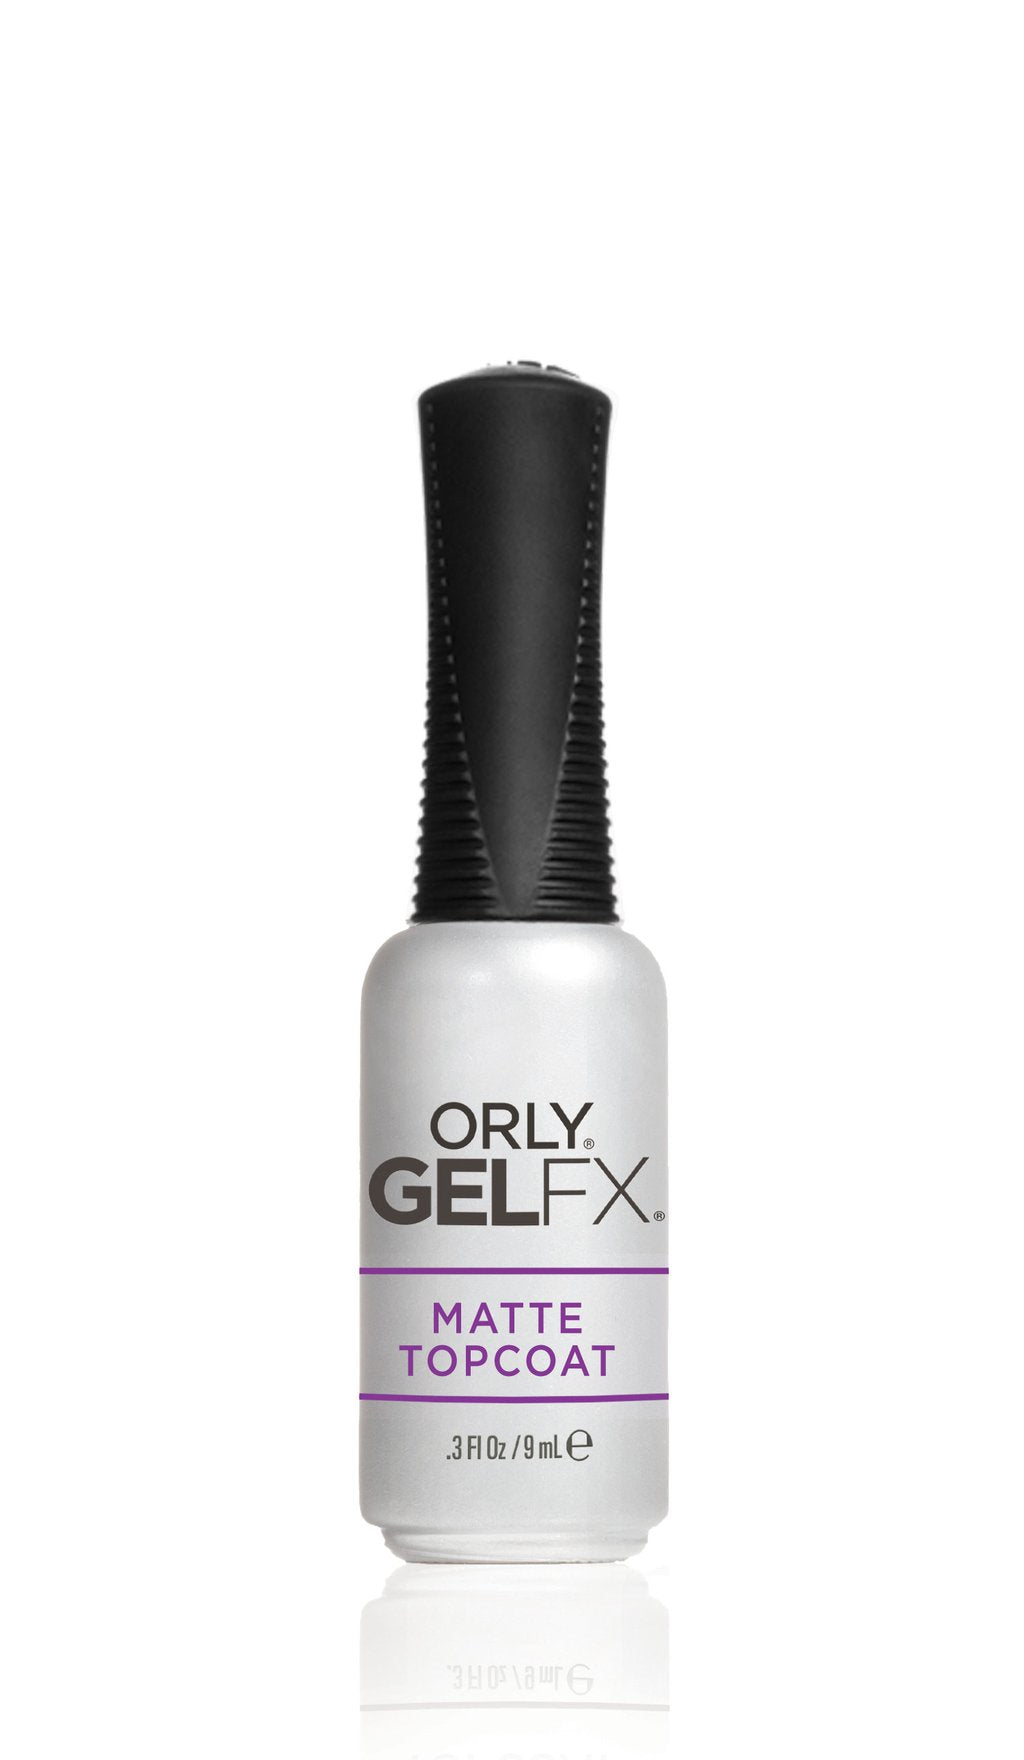 GELFX Matte Top Coat 0.3oz